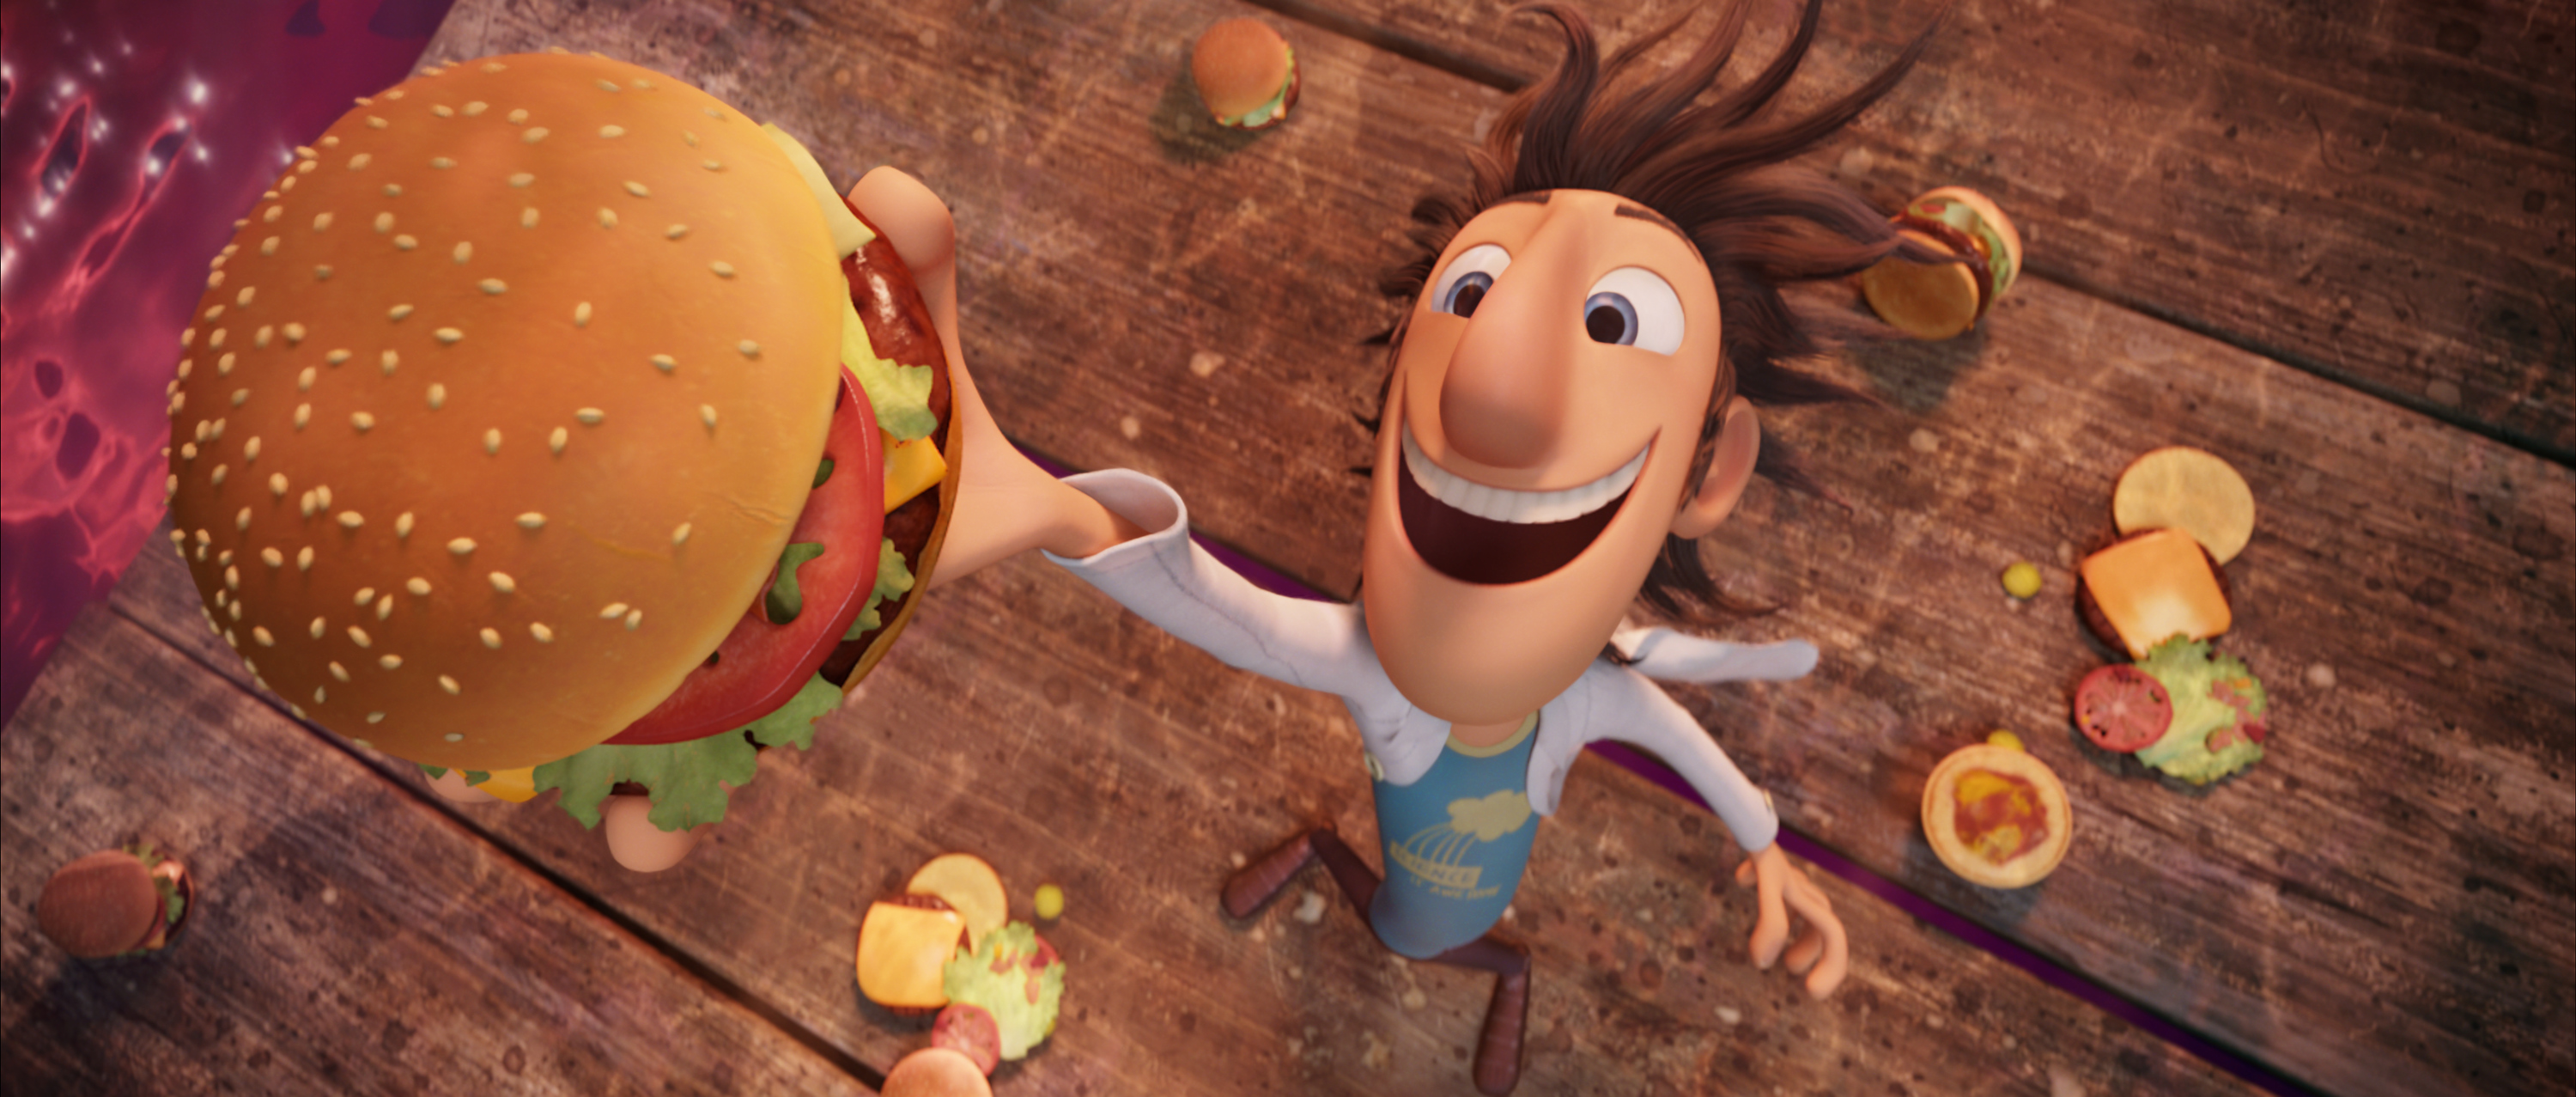 Cloudy with  a Chance of Meatballs Main Image